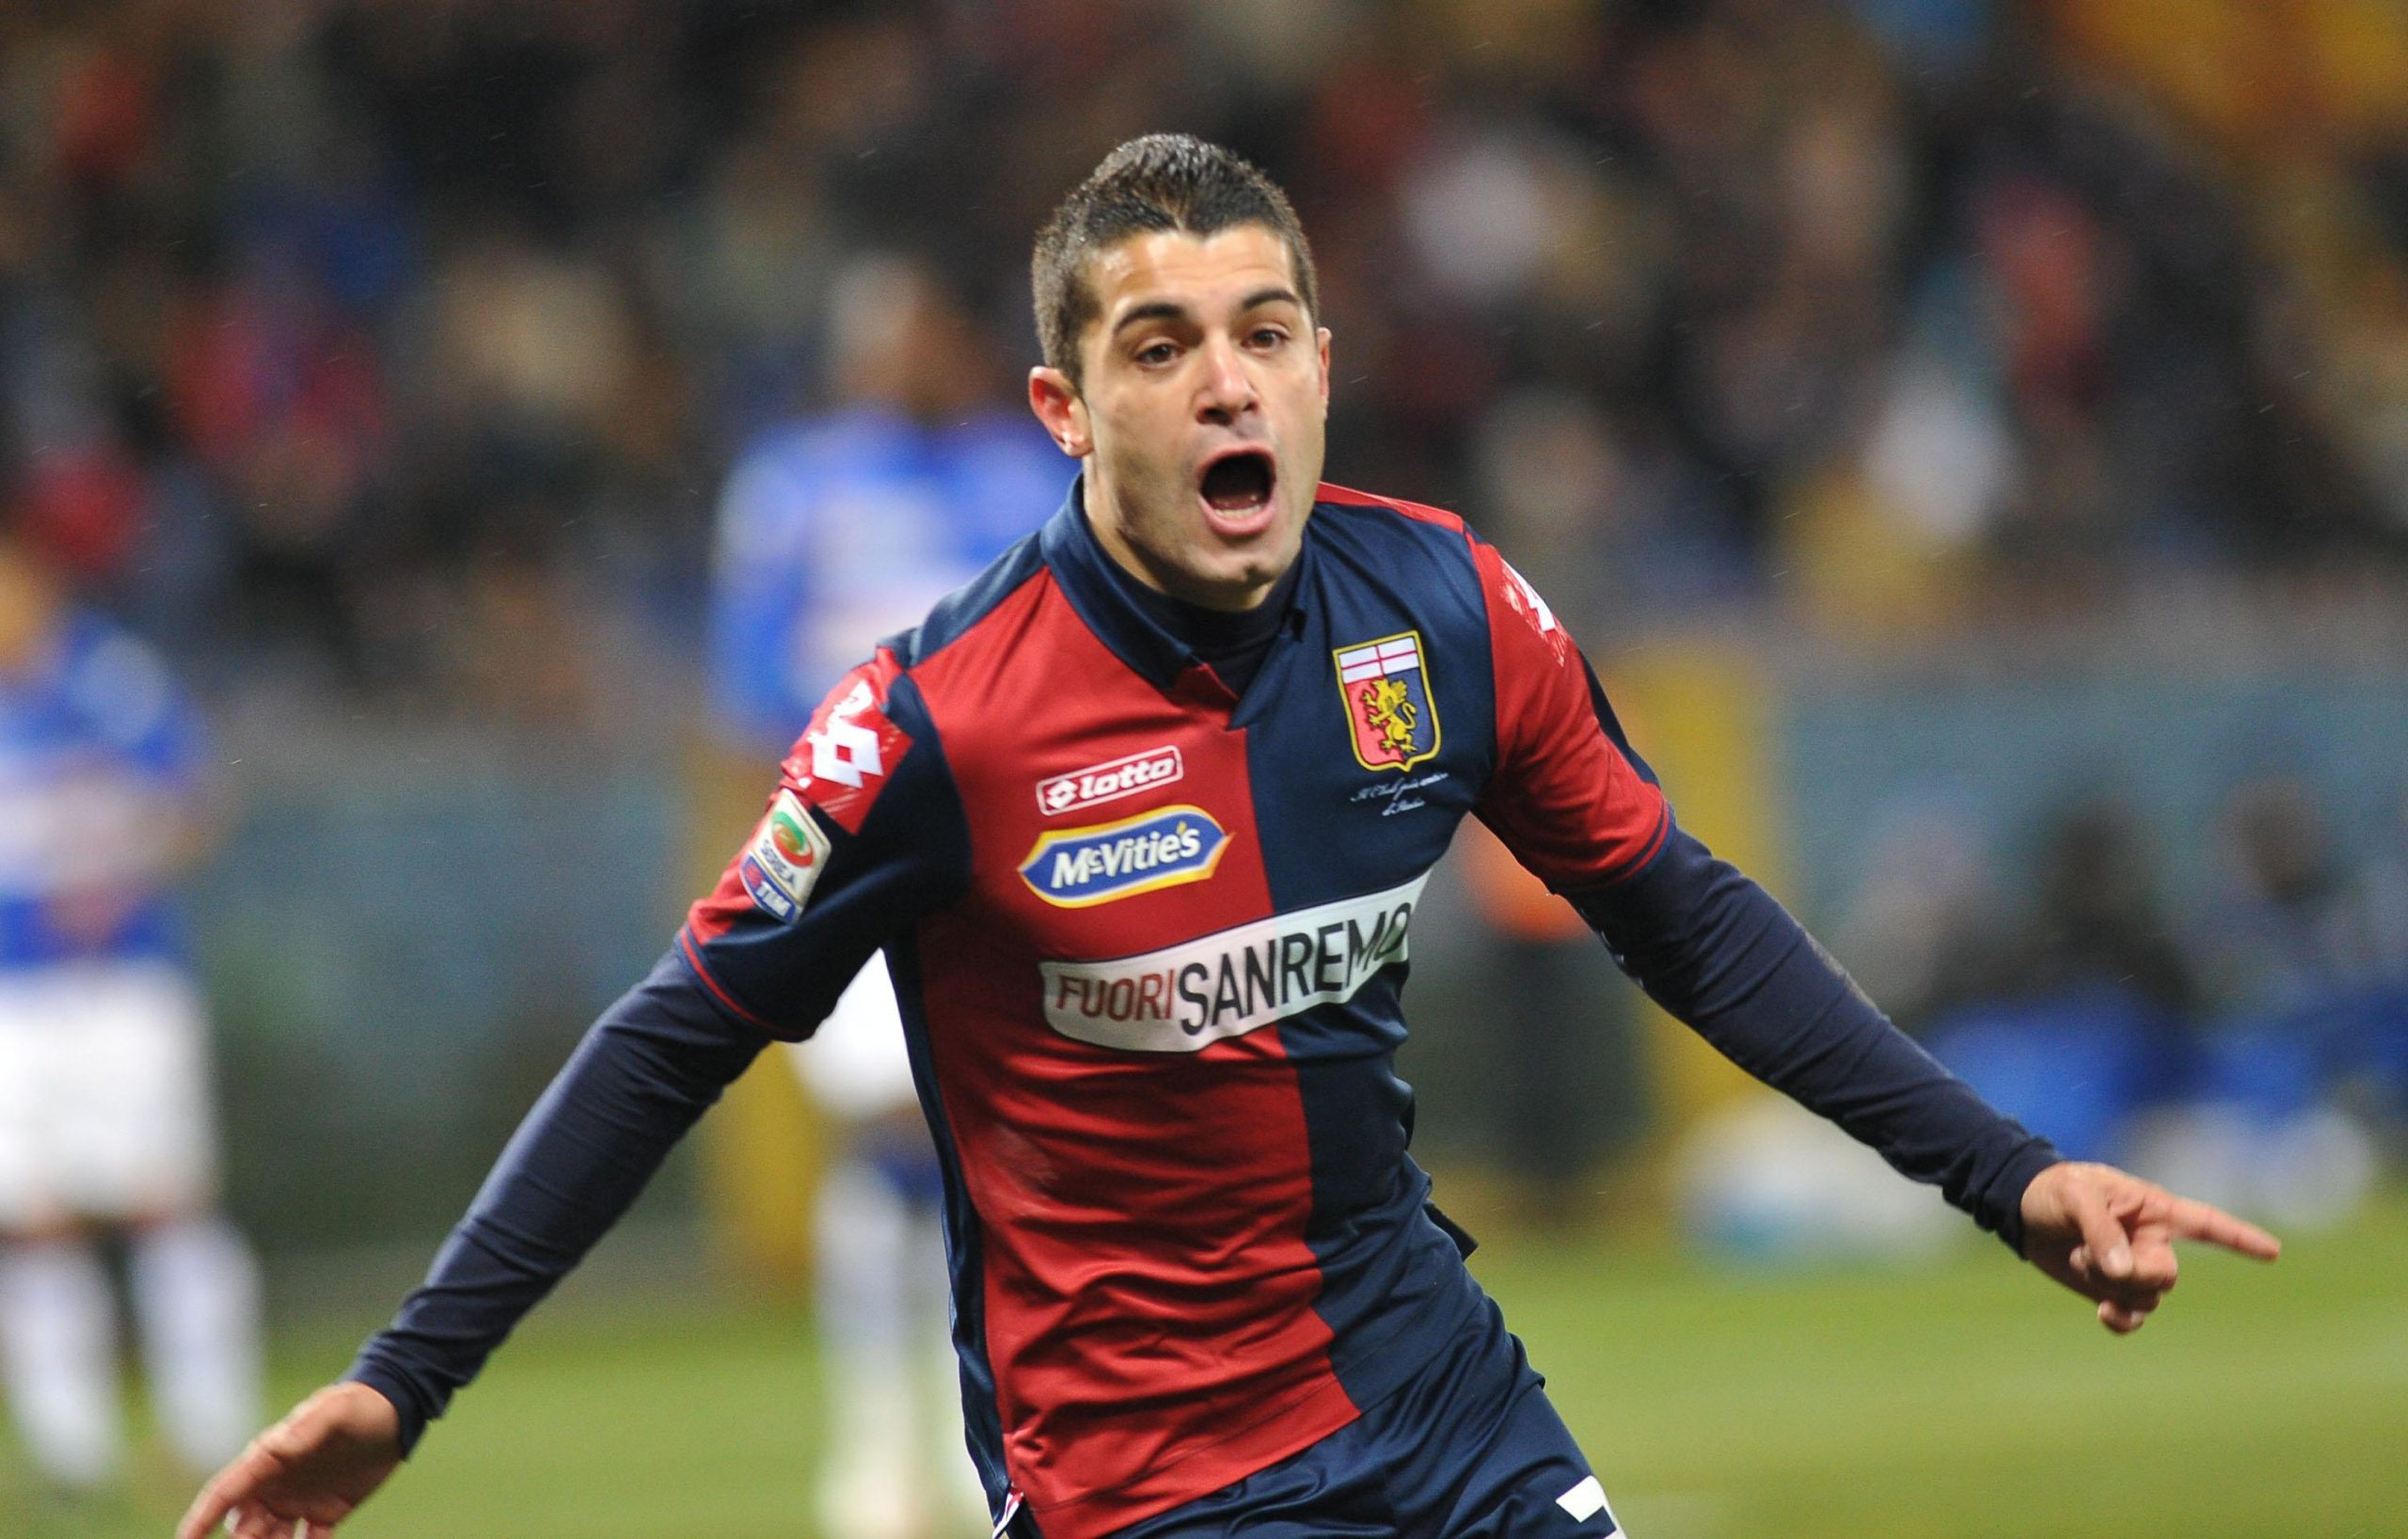 Falque thrived at Genoa